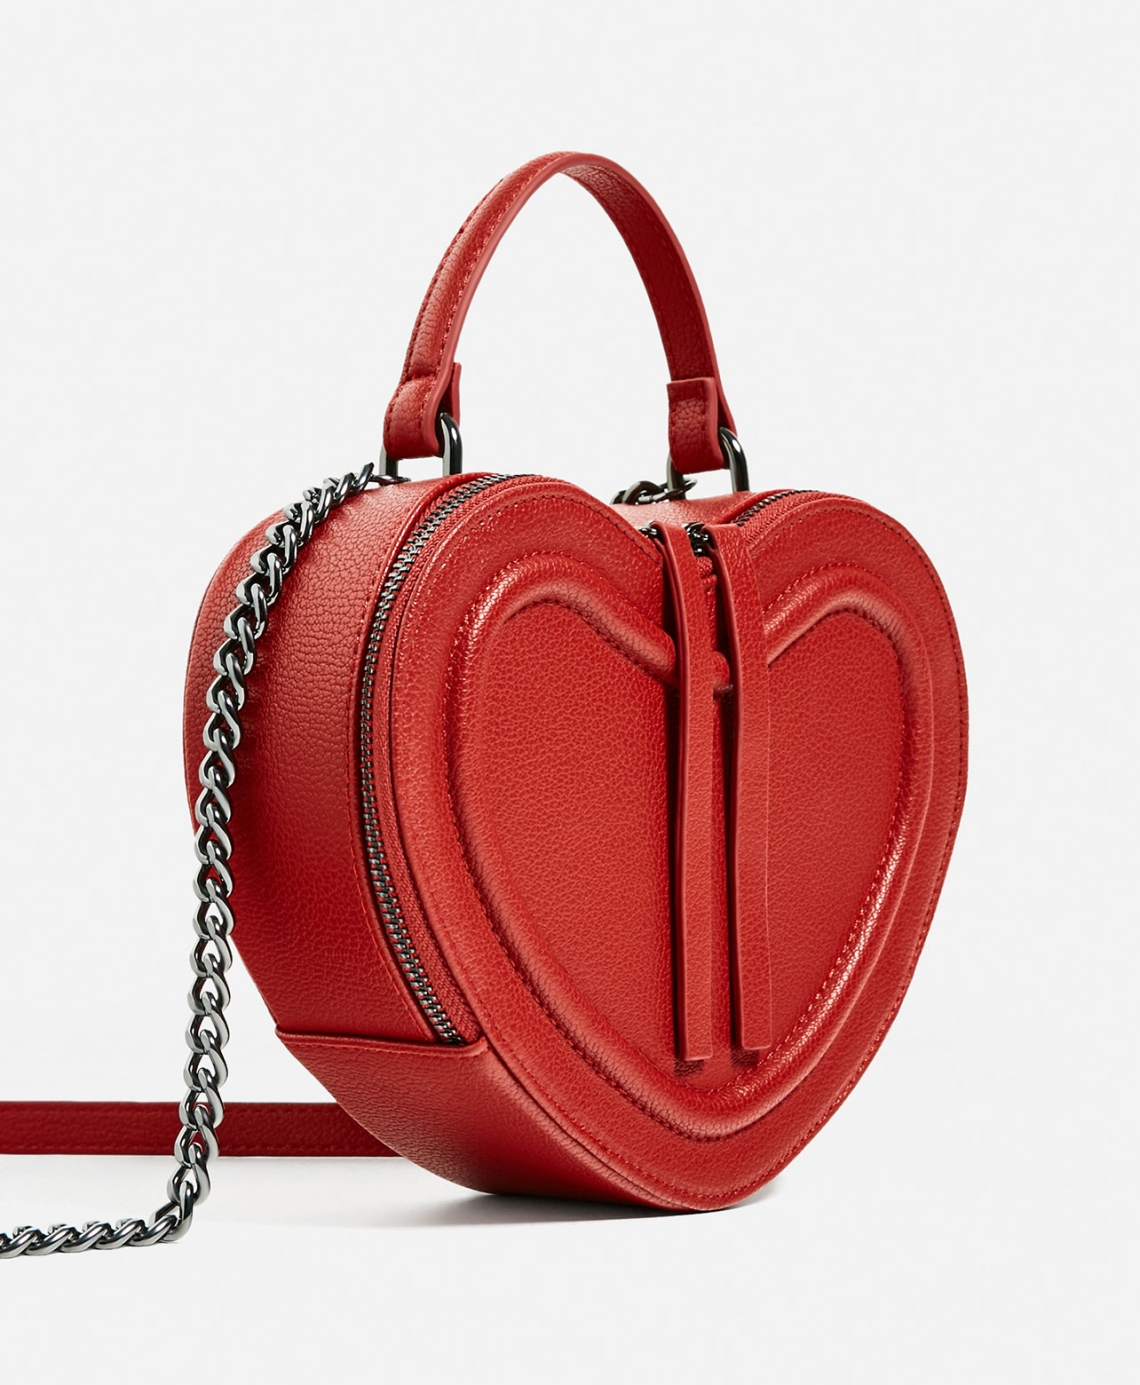 zara-heart-bag-1